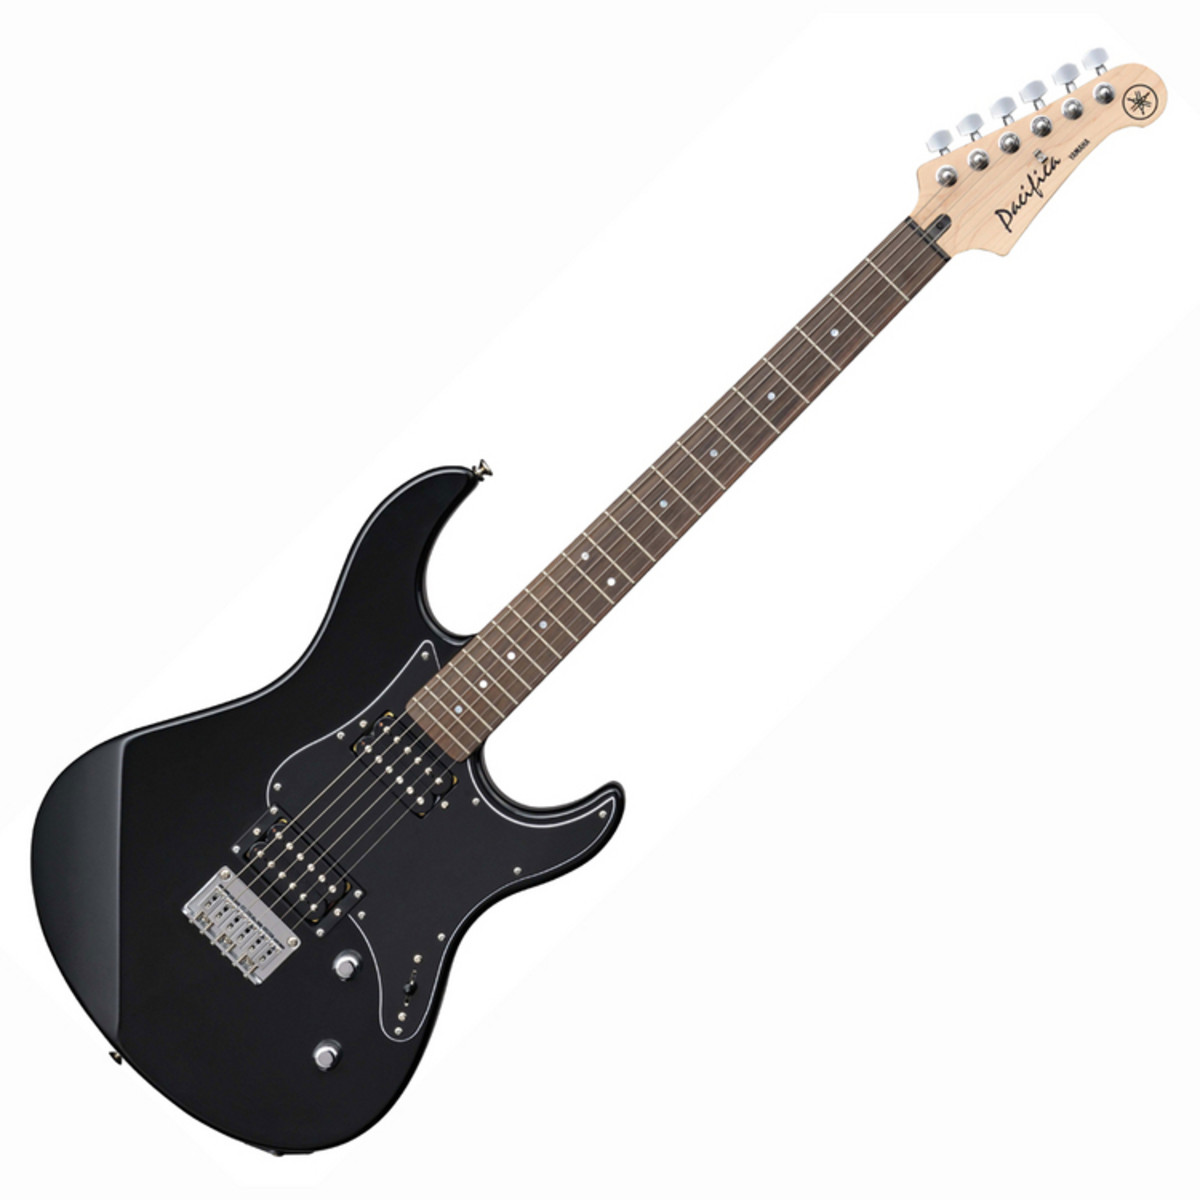 Yamaha pacifica 120h electric guitar black at for Yamaha pacifica 120s